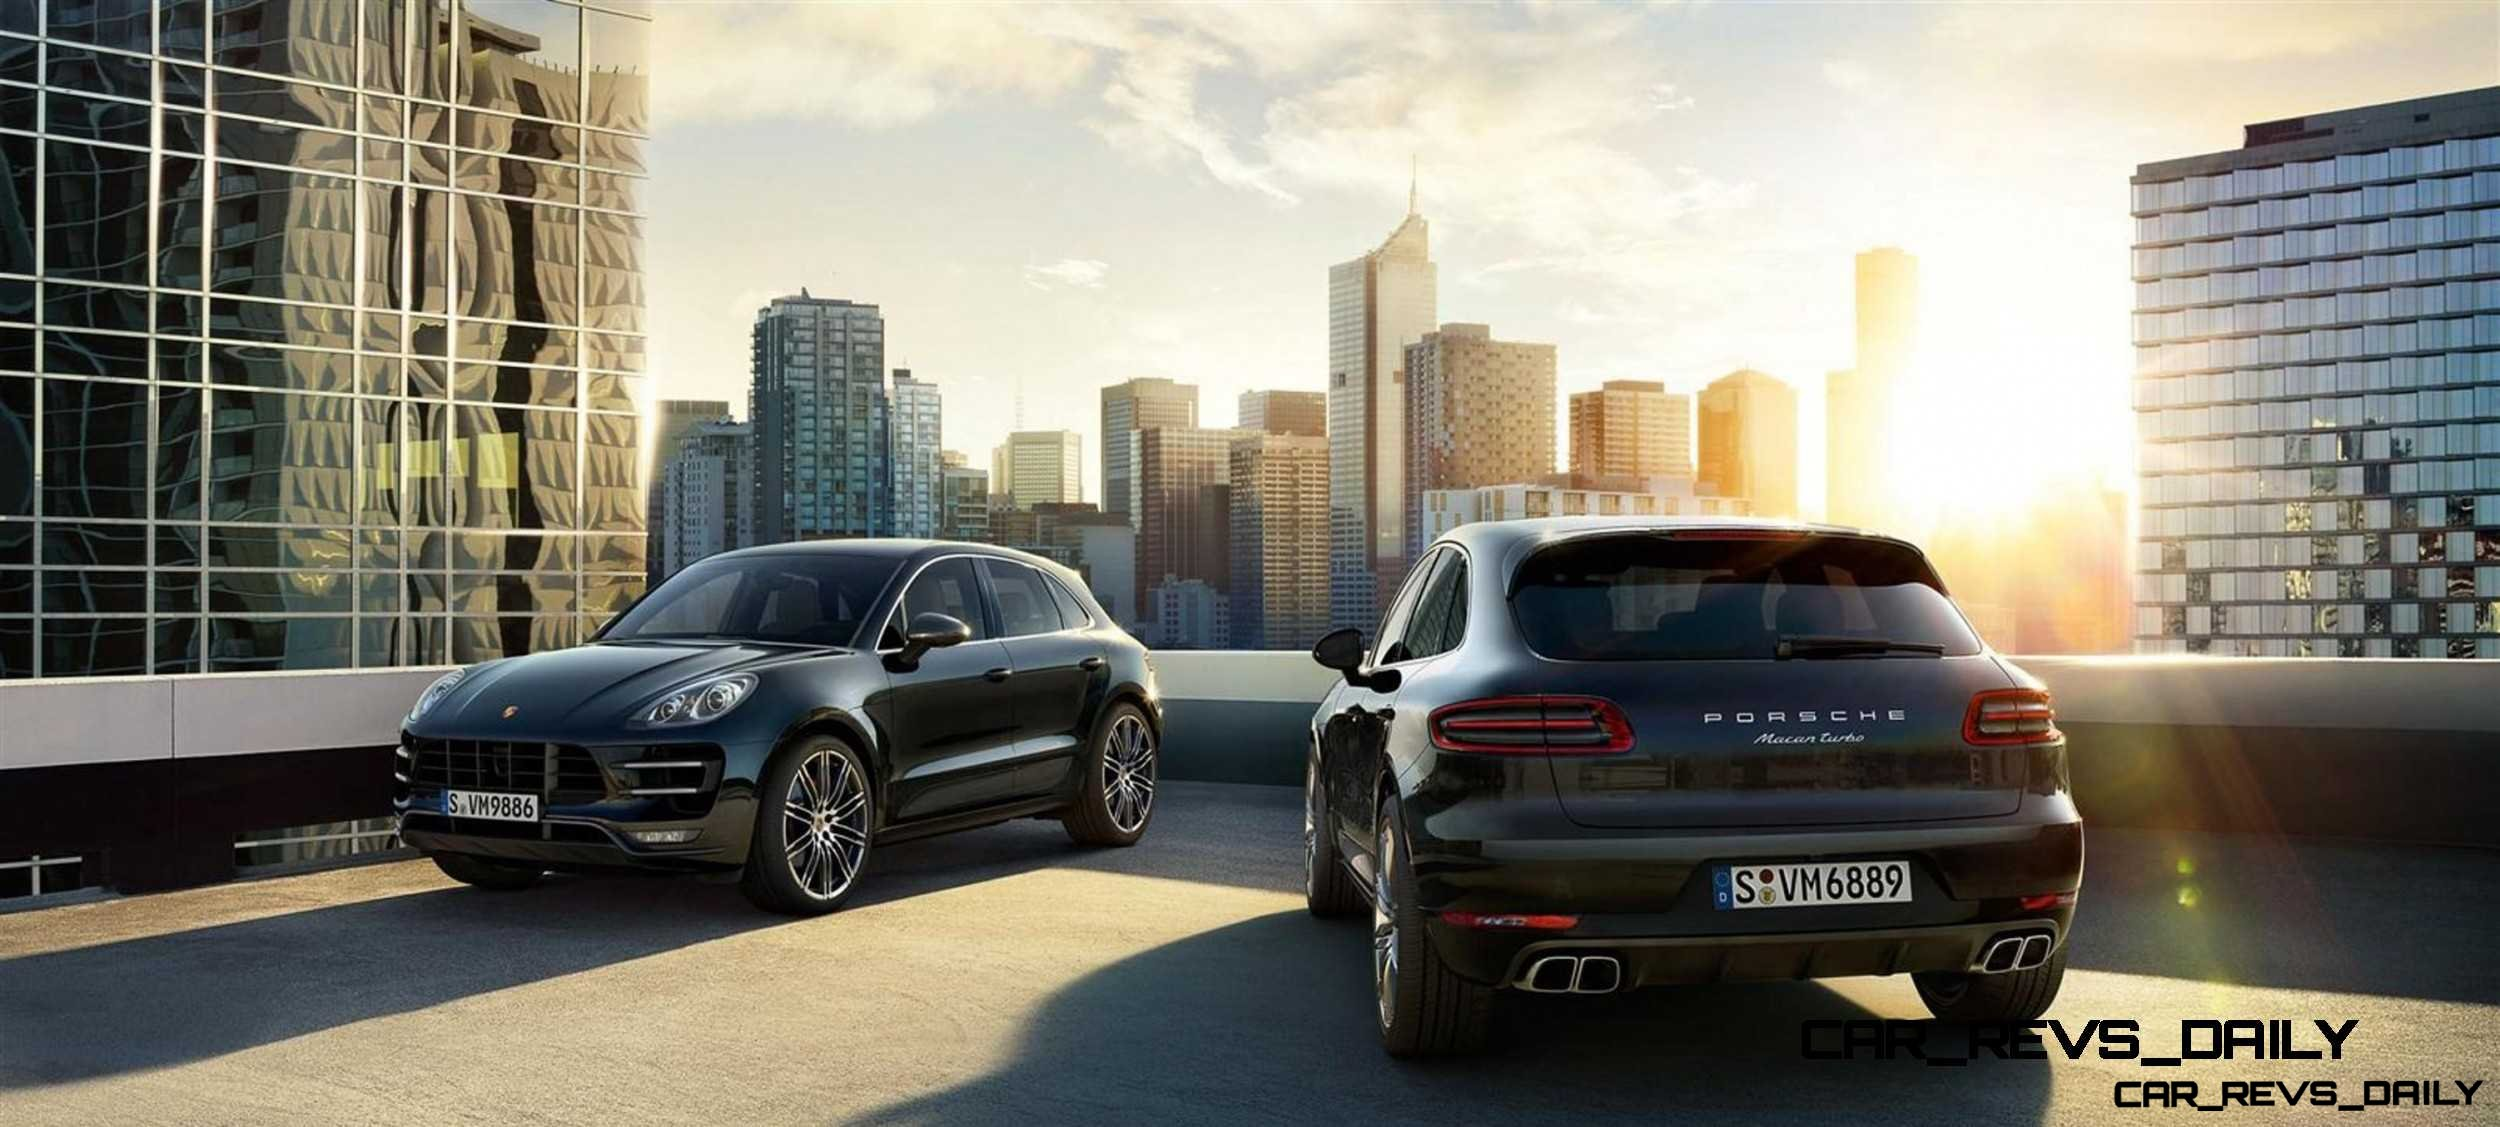 2015 Porsche Macan - Latest Images - CarRevsDaily.com 26